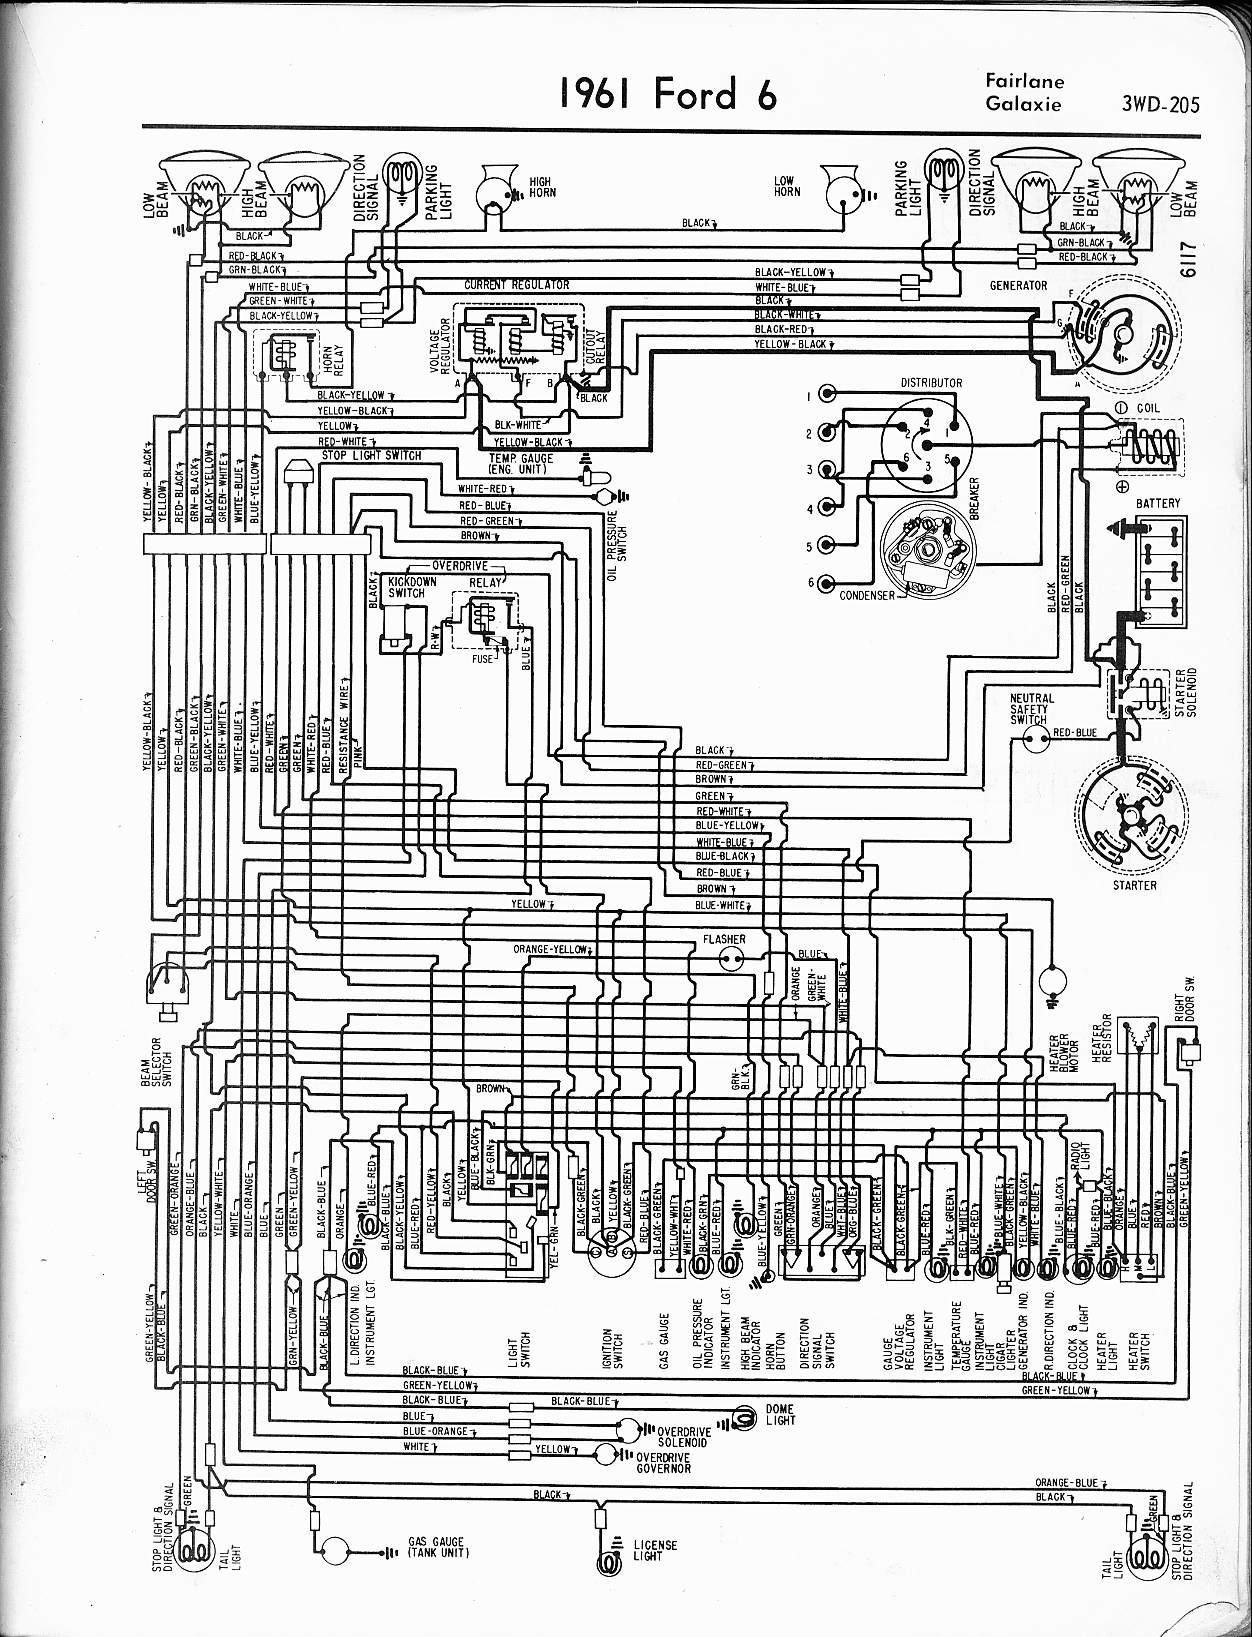 hight resolution of 1965 ford f100 ignition switch wiring diagram detailed schematics 1977 f100 wiring diagram 1980 f100 wiring